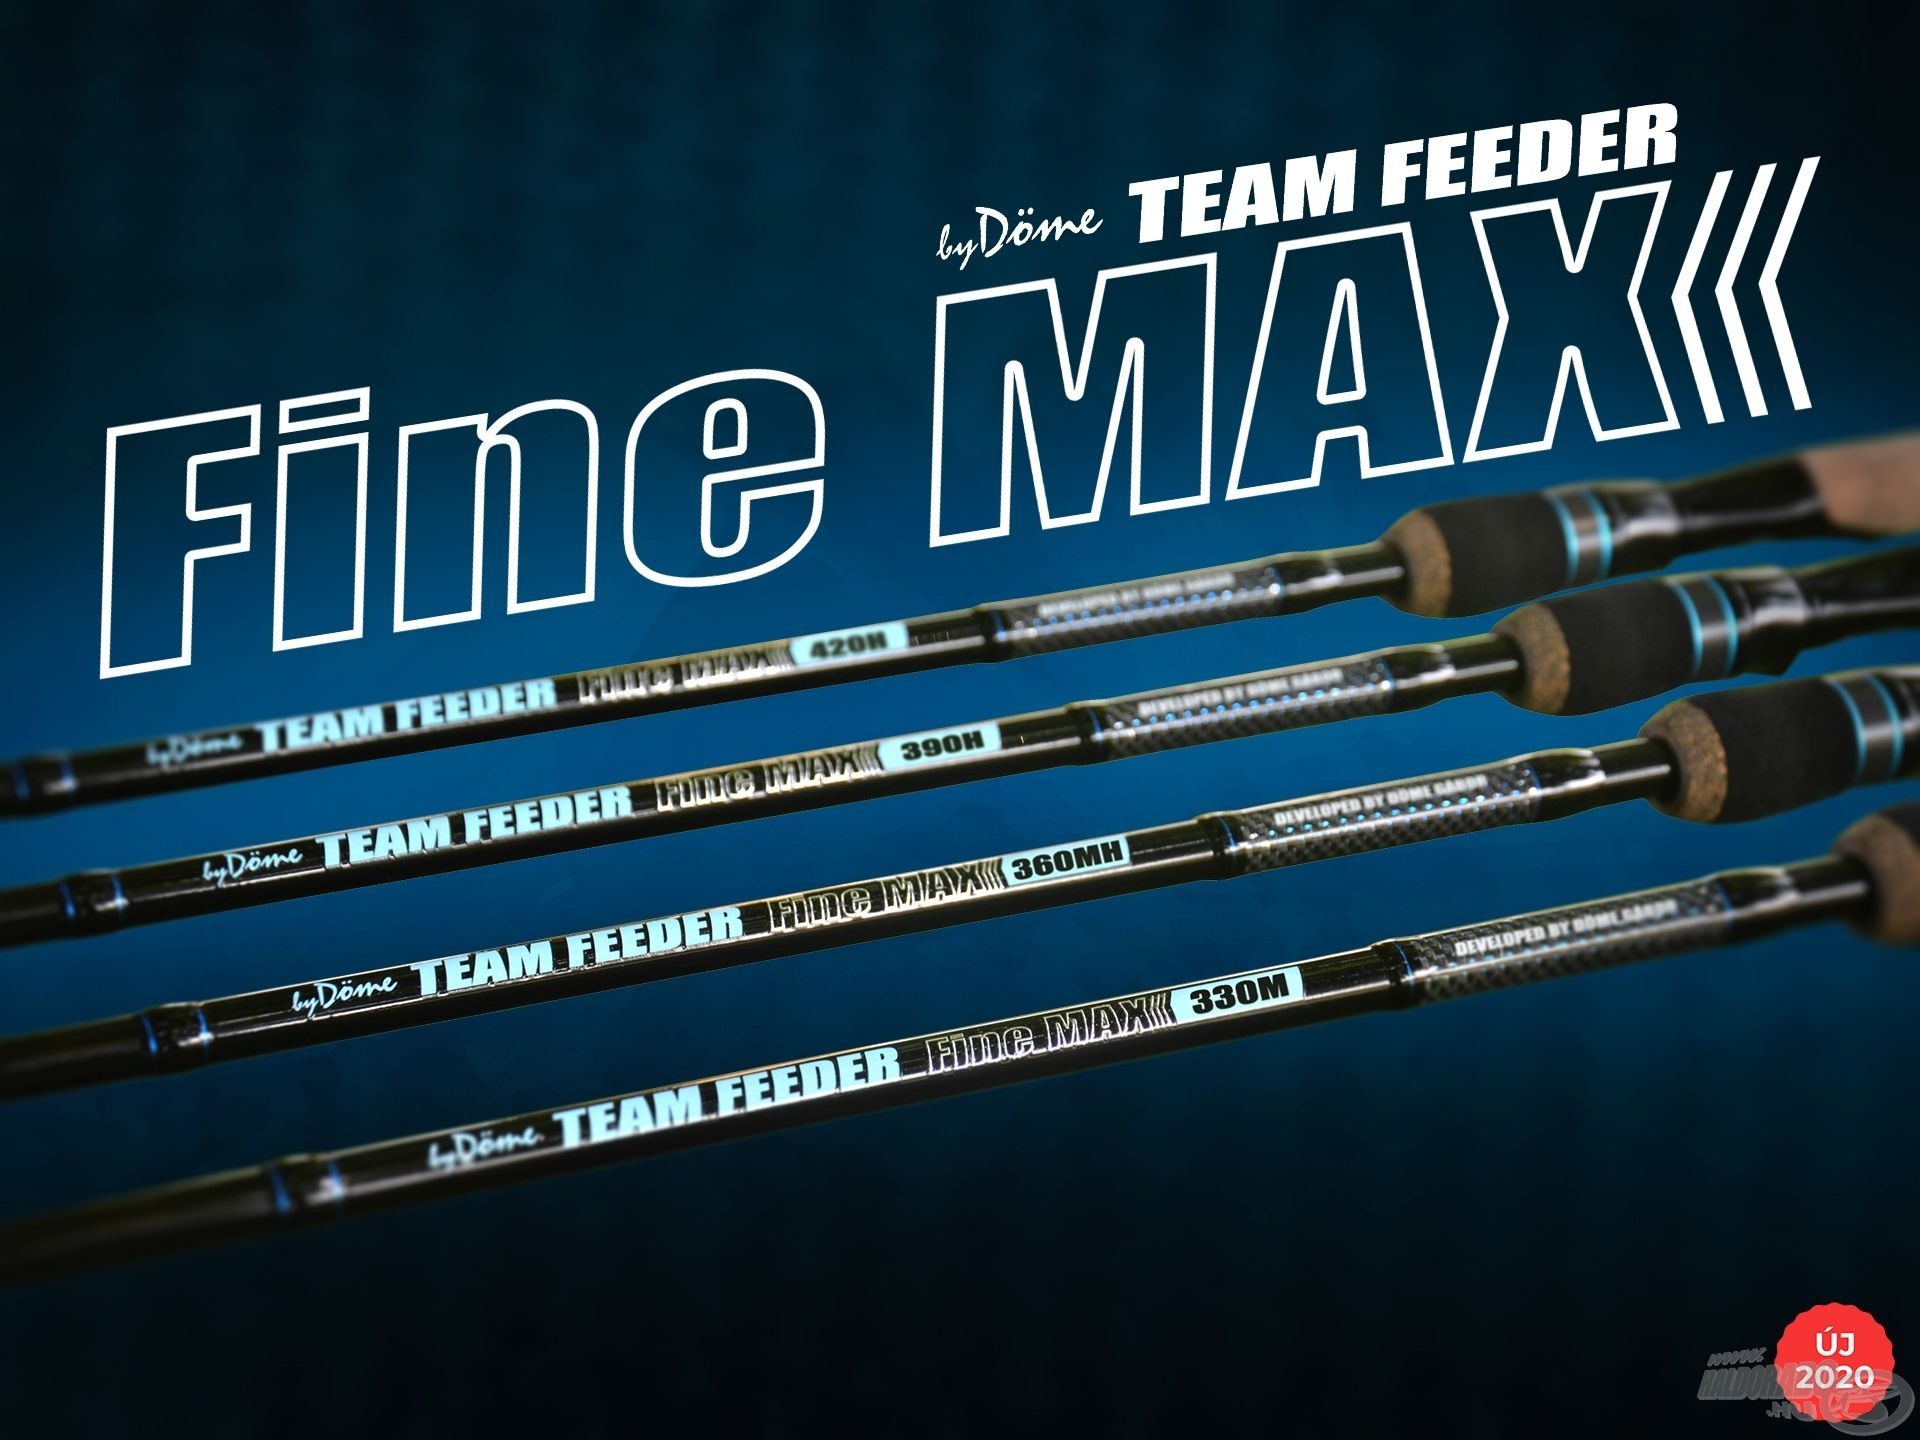 By Dome Team Feeder Fine Max 330MH 20-55G